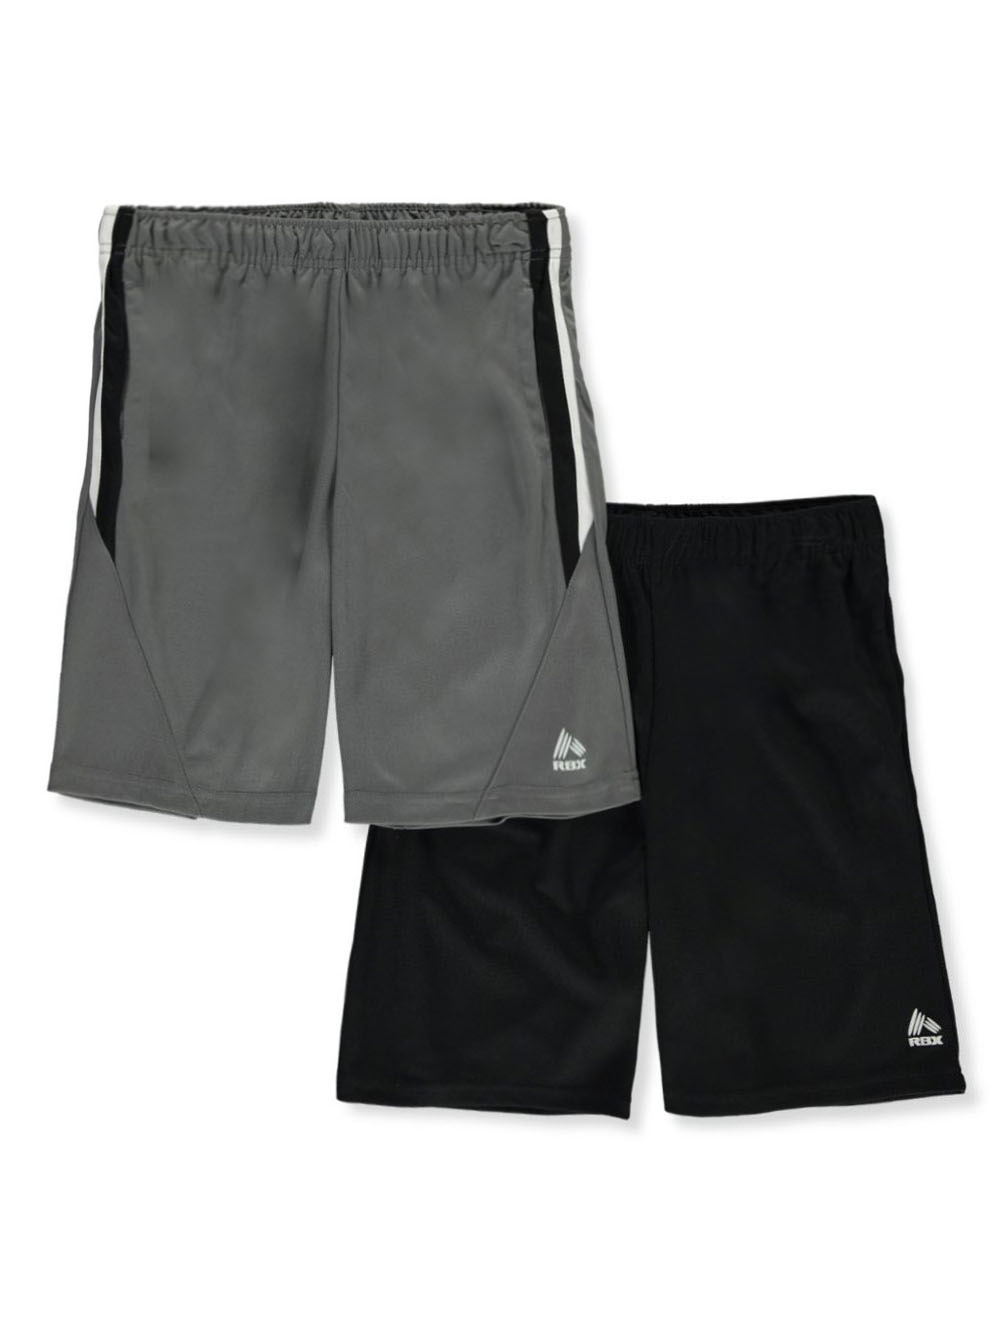 Boys' Angle Trim 2-Pack Shorts